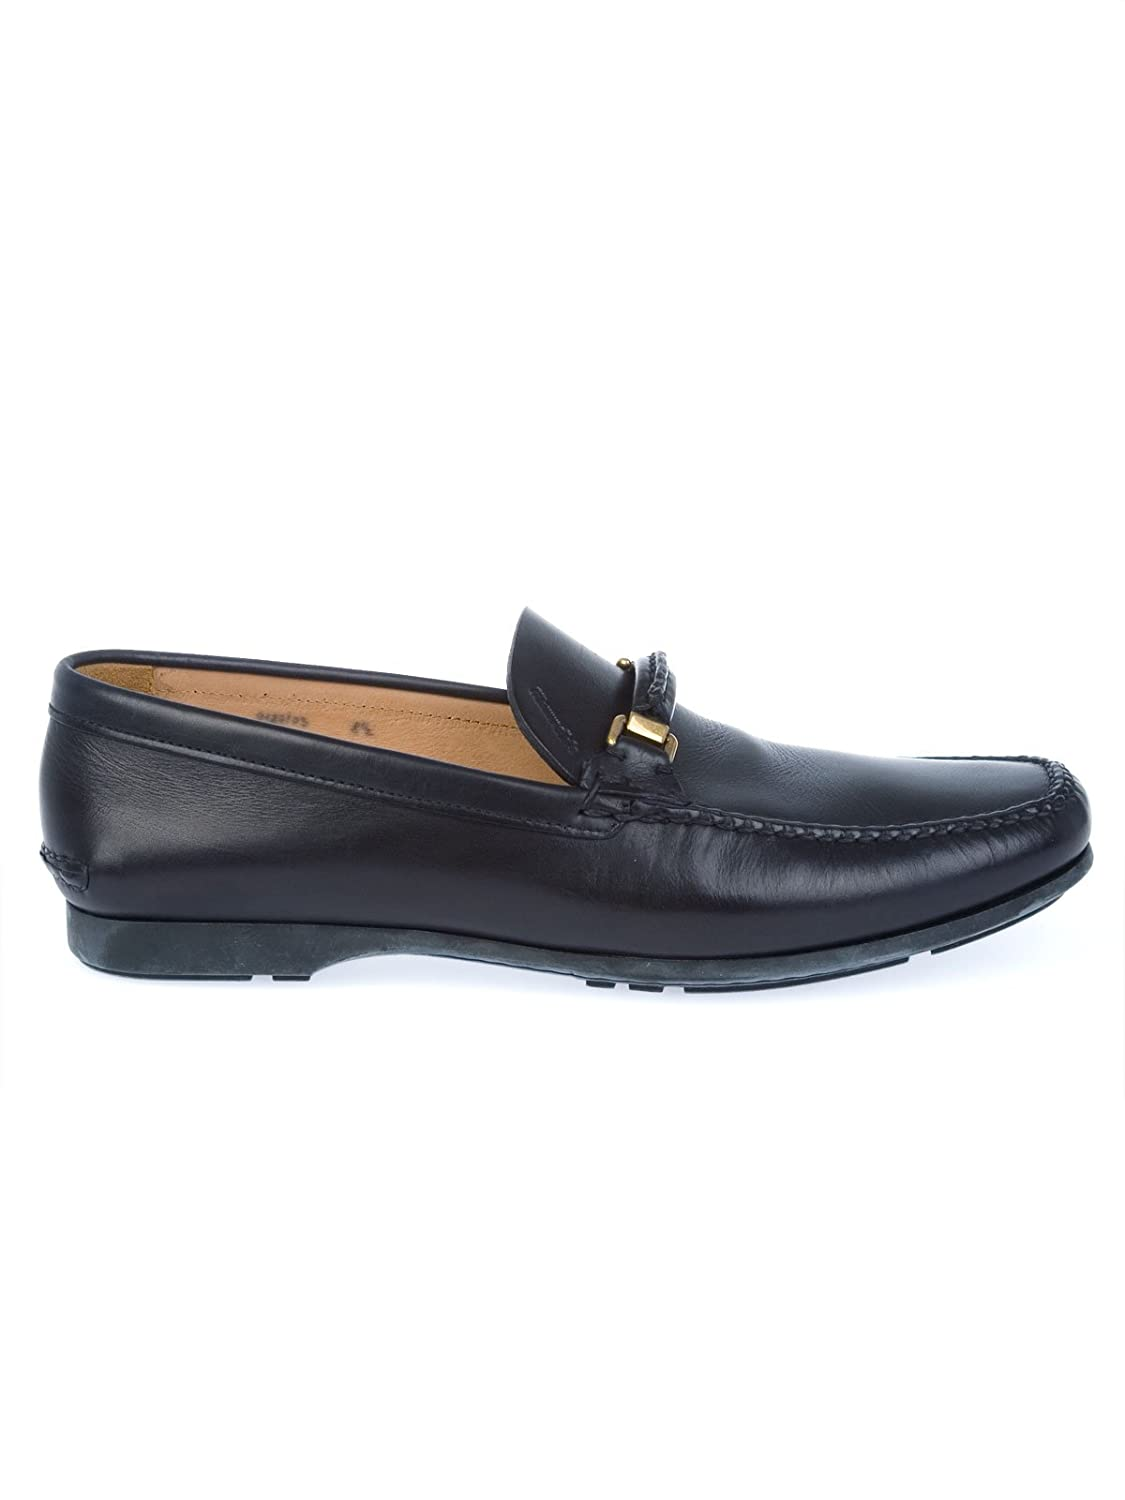 Men's ARONSOFTCALFNAVY Black Leather Loafers